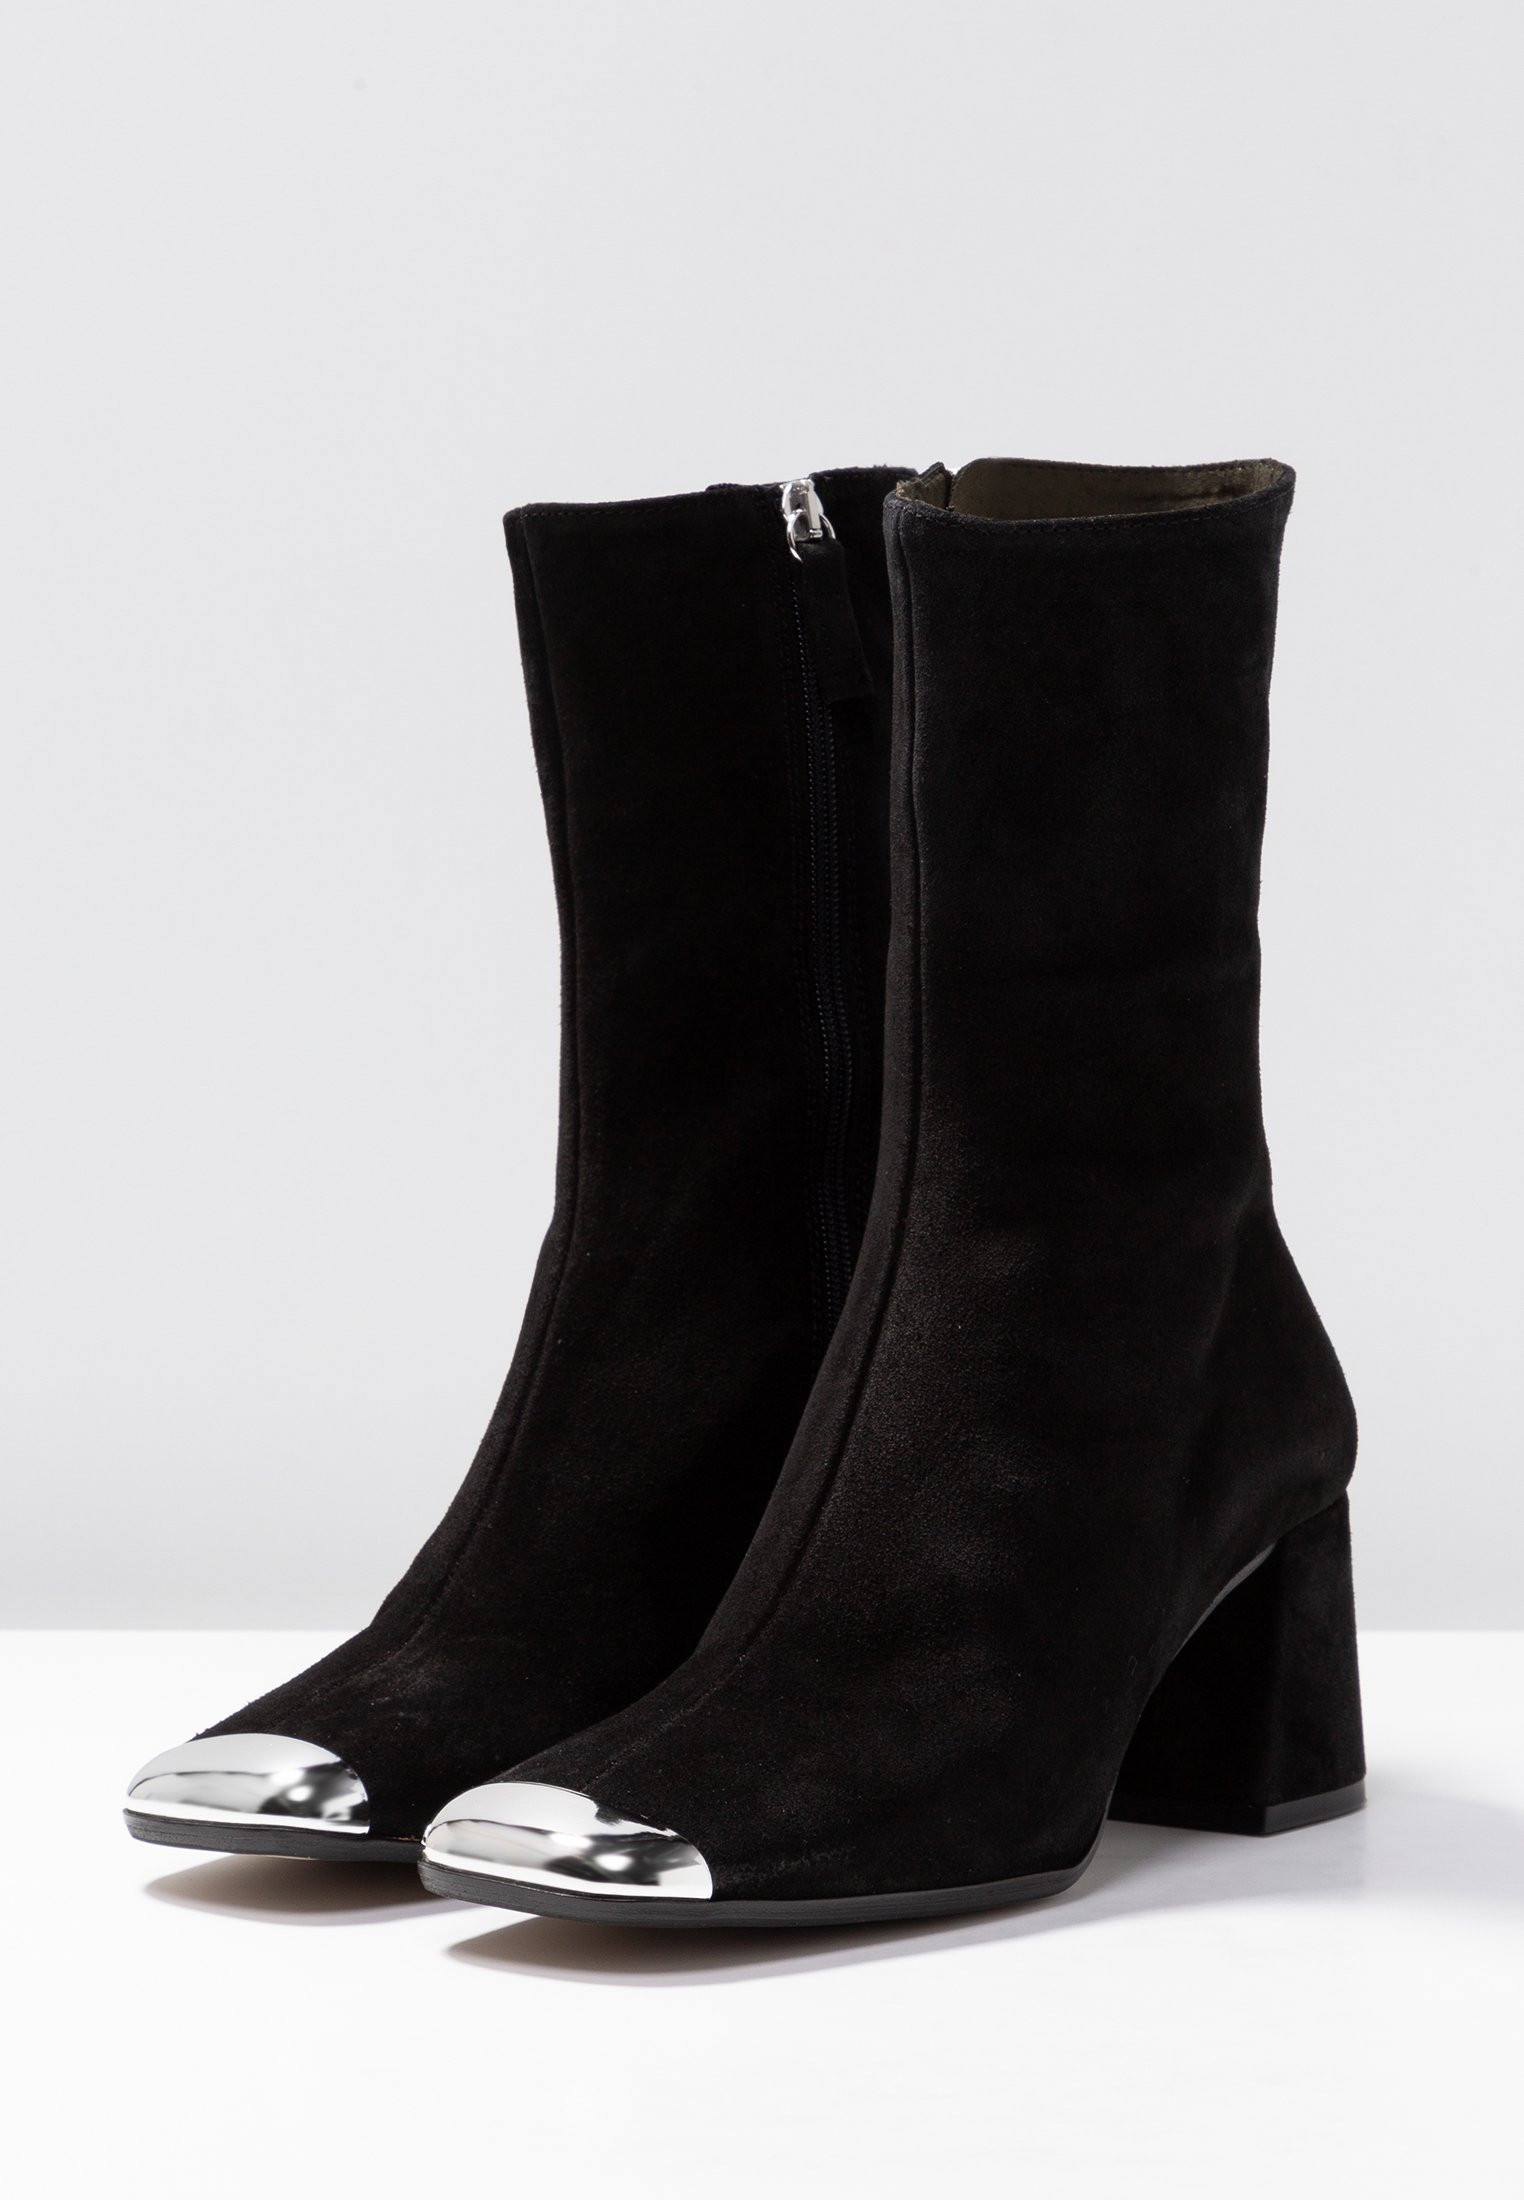 Black Topshop MaxwellBottines Black MaxwellBottines Black Topshop MaxwellBottines Topshop OZwPiukTX